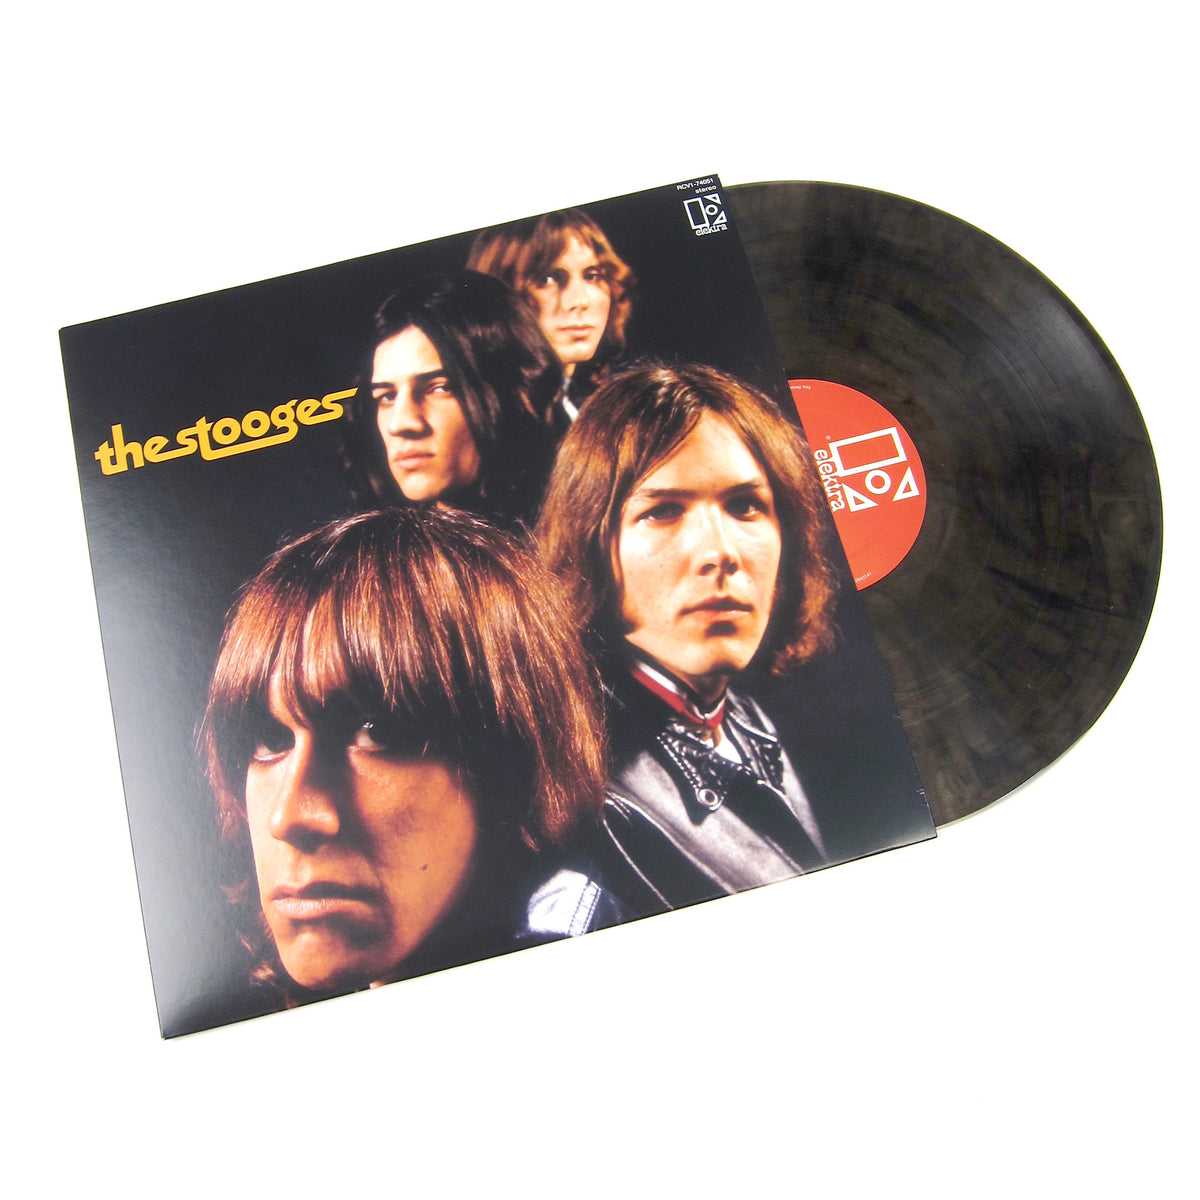 The Stooges: The Stooges (Colored Vinyl) Vinyl LP